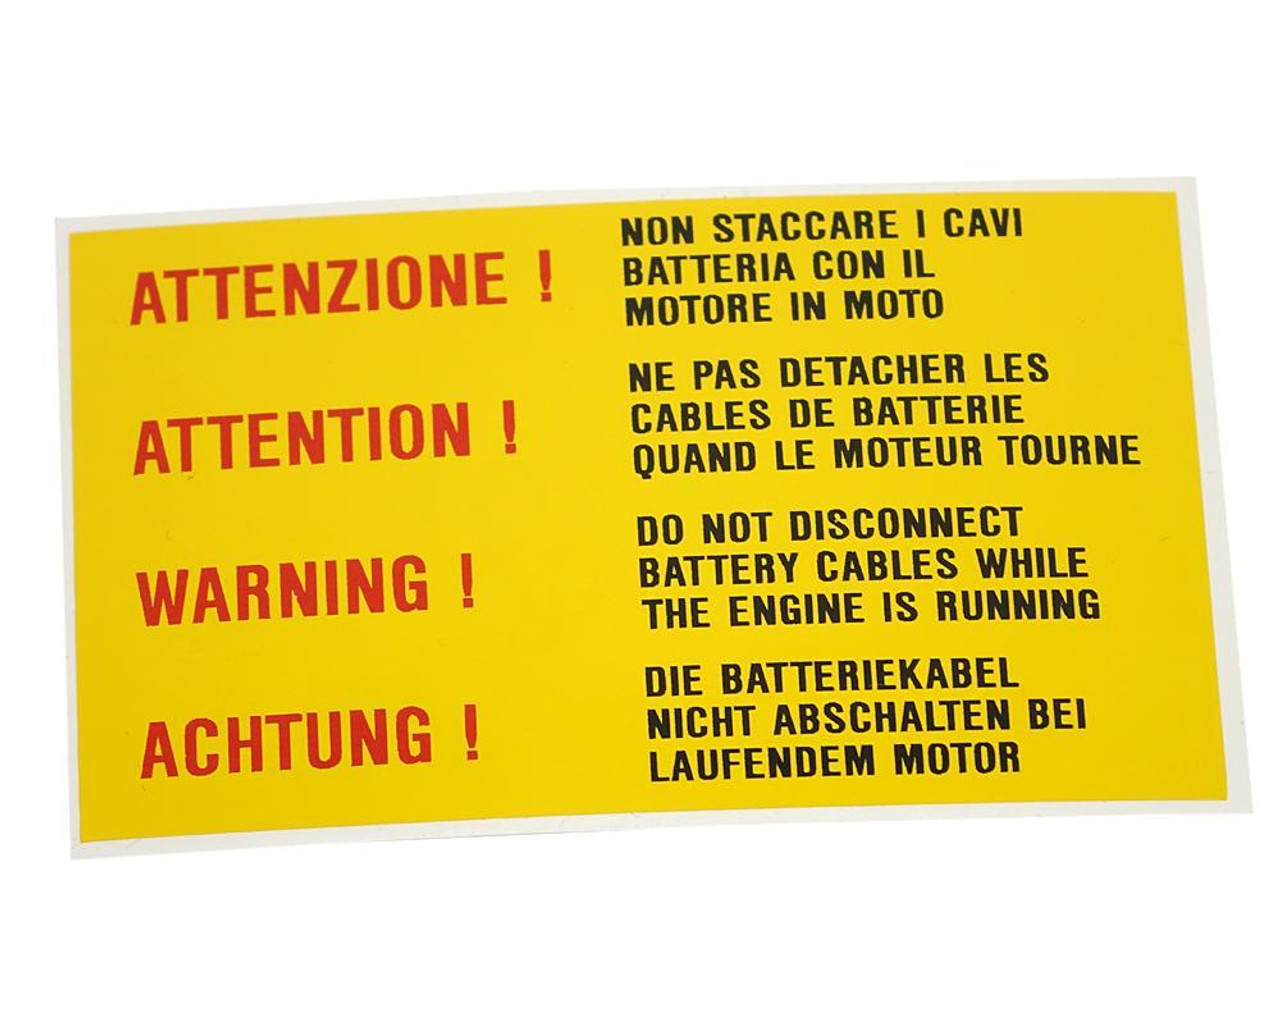 Warning! - Do Not Disconnect Battery Decal